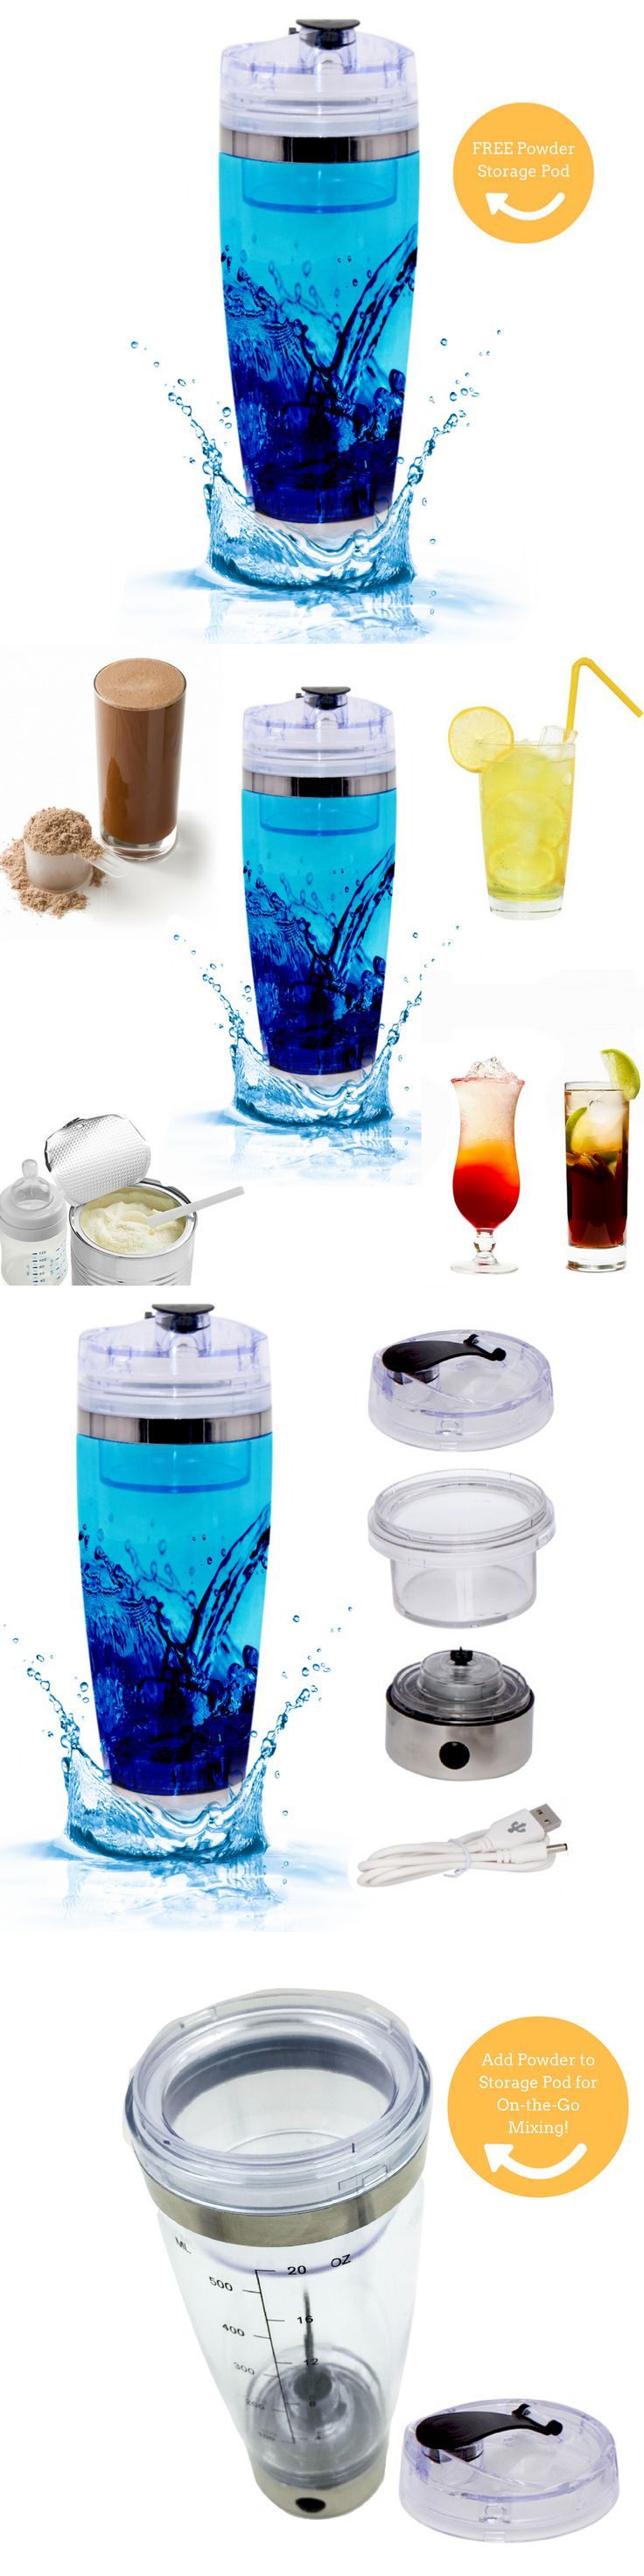 Bottle and Food Warmers 20404: New Usb Rechargeable Electric Shaker Blender Bottle Baby Formula Powder Mixer -> BUY IT NOW ONLY: $32.25 on eBay!